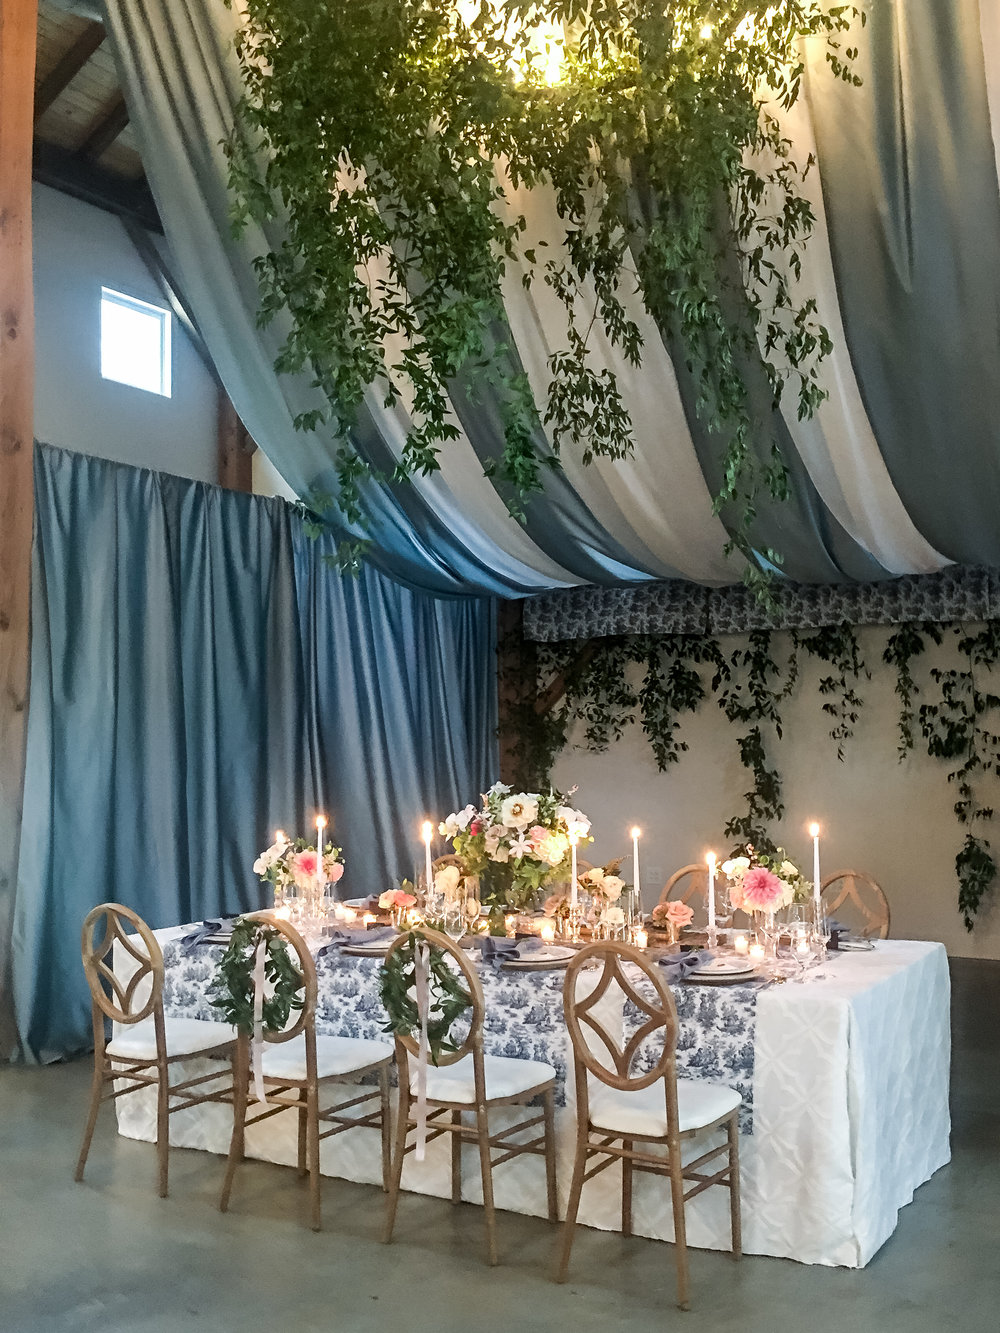 Southern Summer at Home Wedding Barn Chapel Hill NC reception tablescape